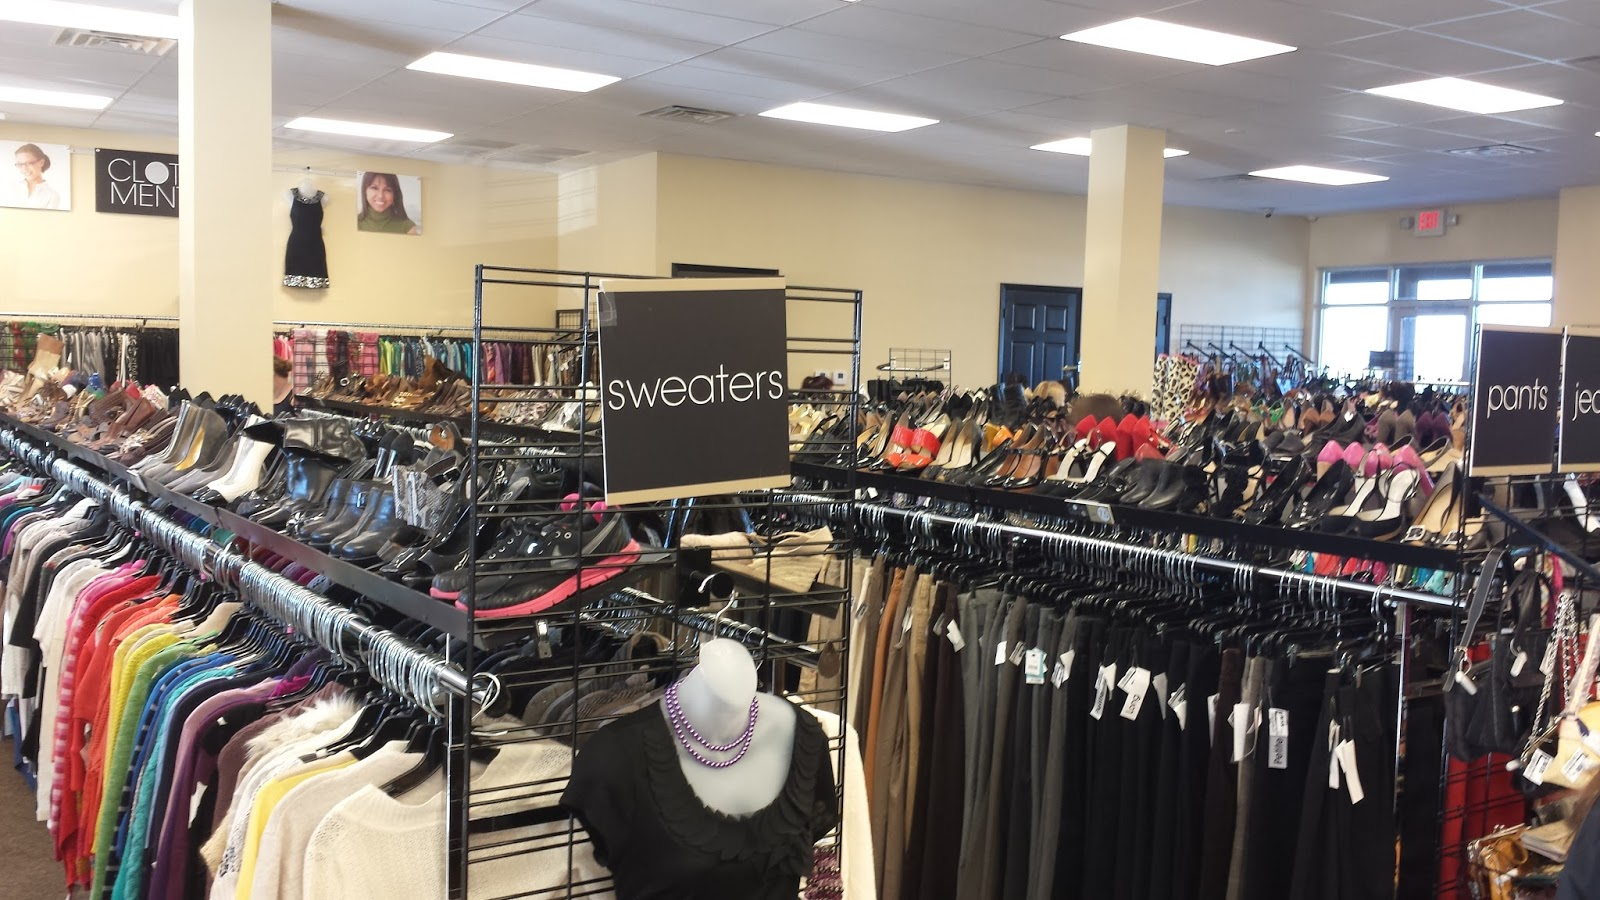 Mentor clothes store